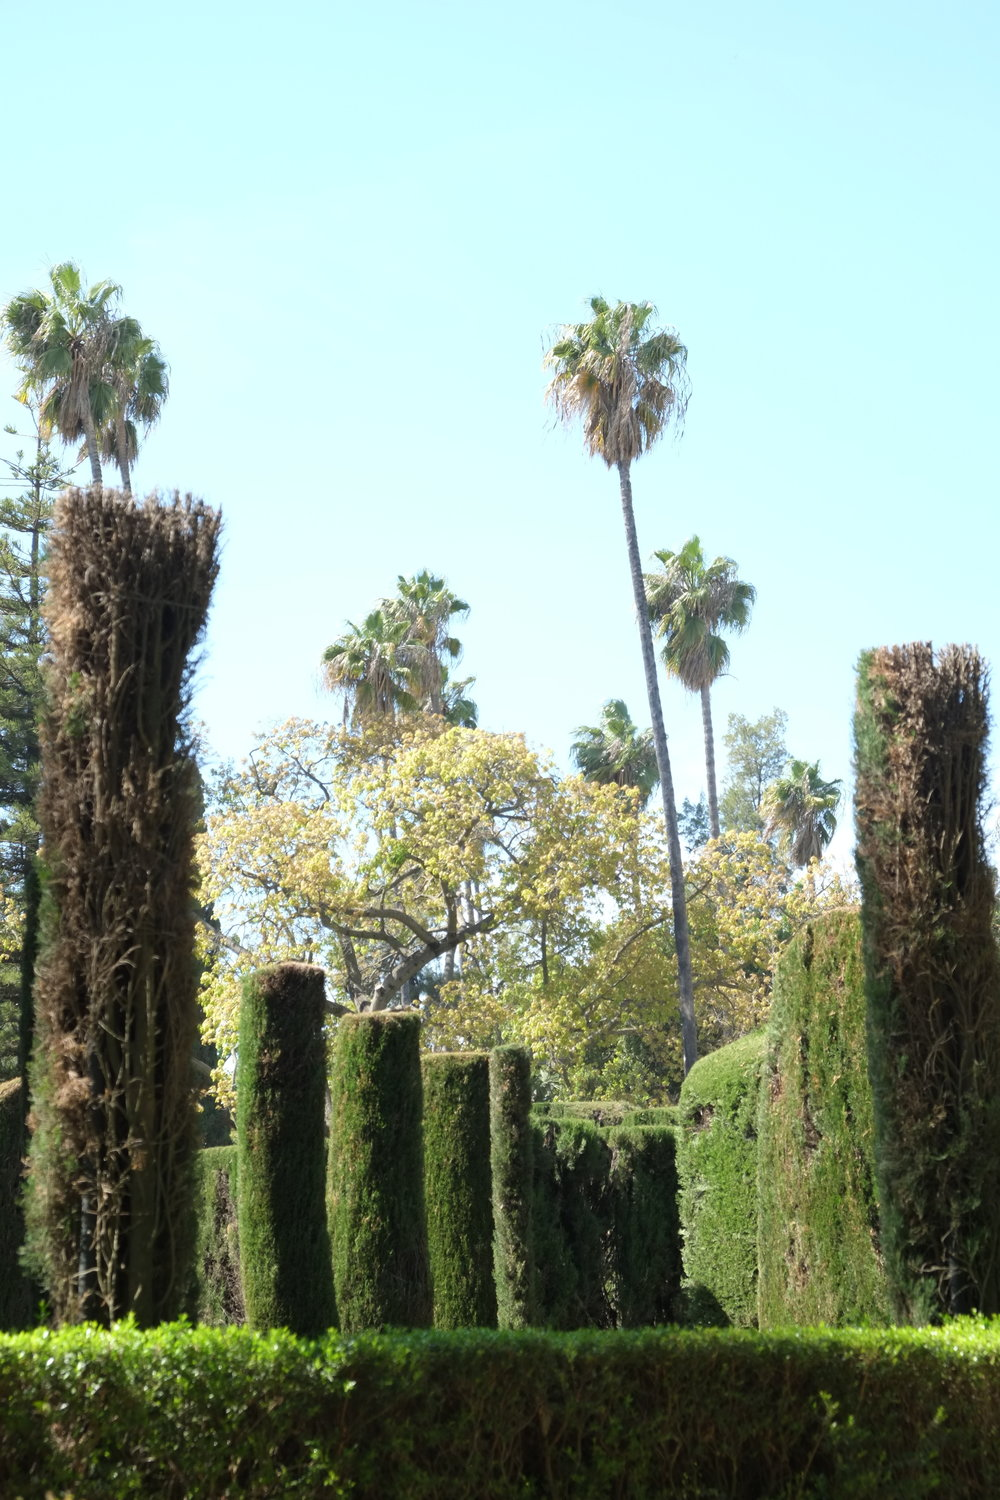 Palm trees of Real Alcazar